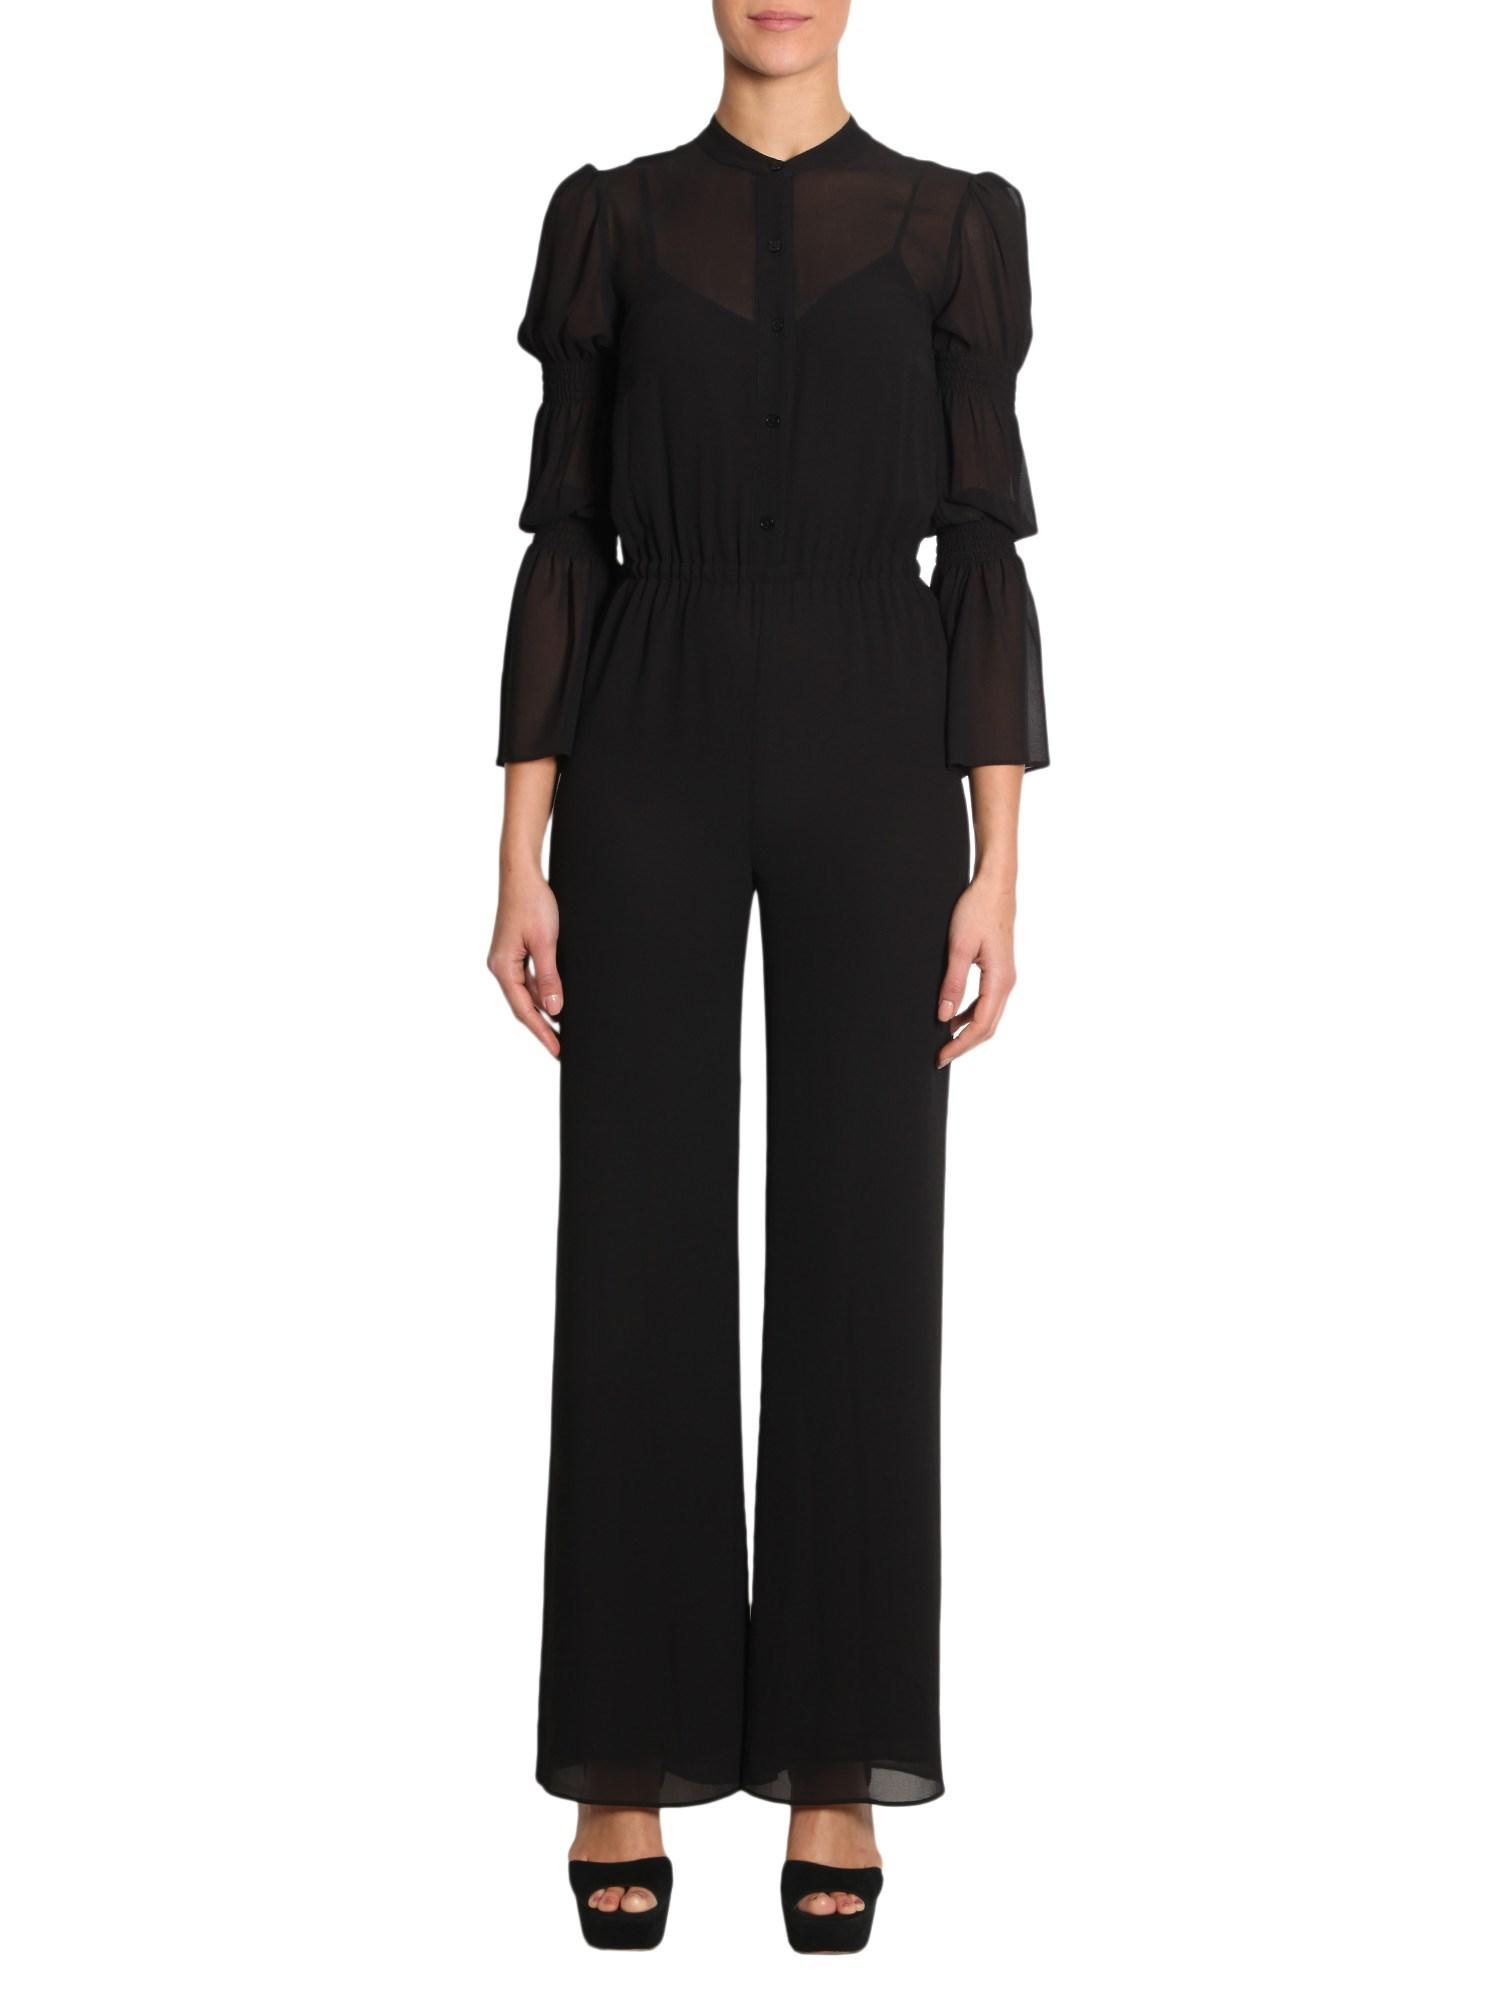 931bb4926d4 MICHAEL Michael Kors. Women s Black Long Sleeve Crêpe Jumpsuit With Smocked  Detail